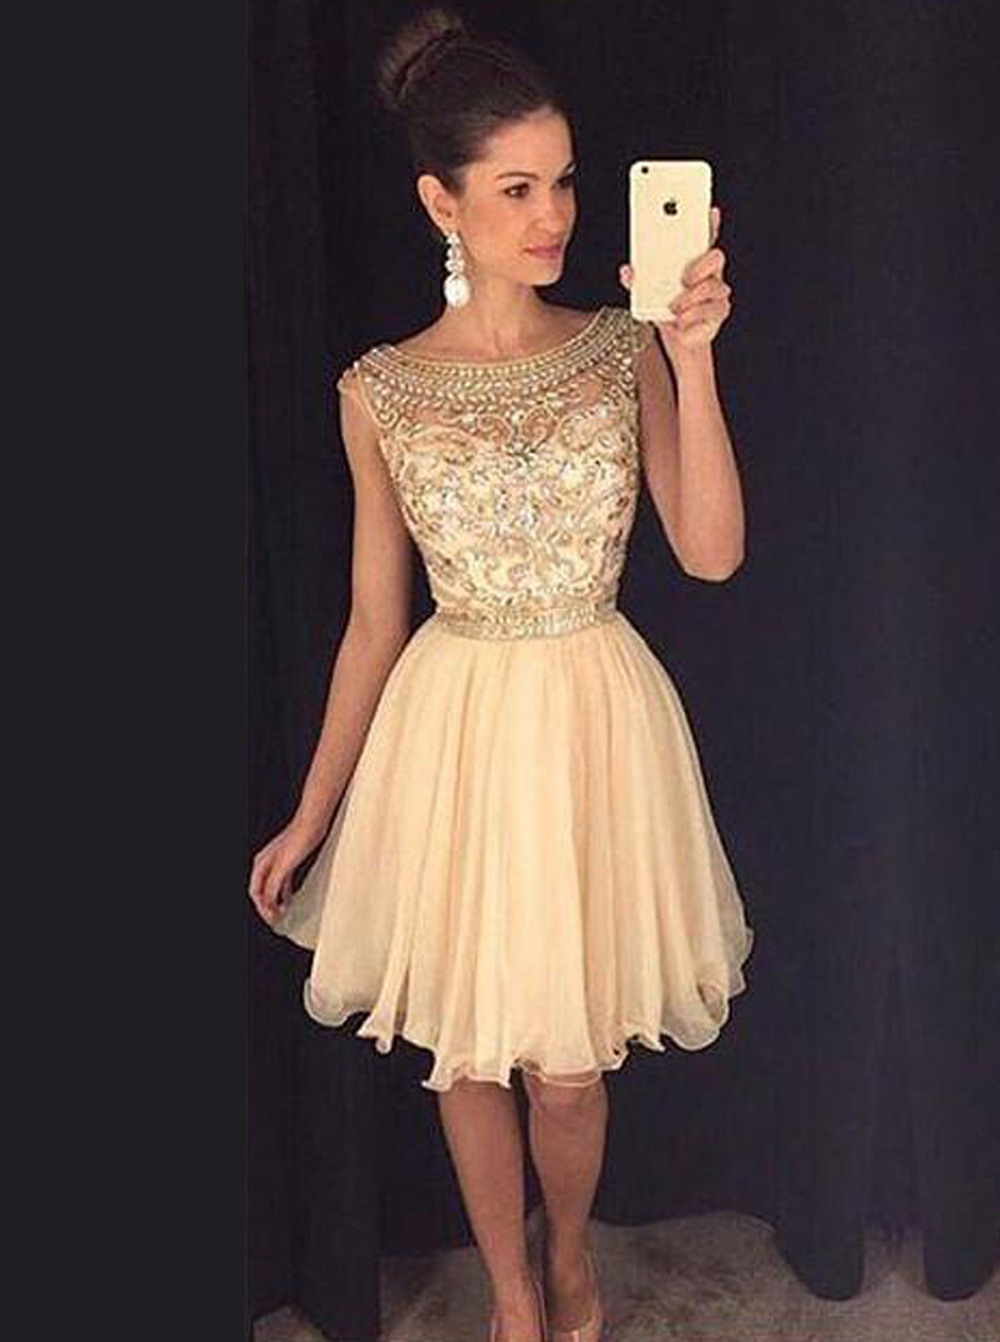 A-line Bateau Cap Sleeves Tulle Beaded Short Champagne Homecoming Prom Dress фото